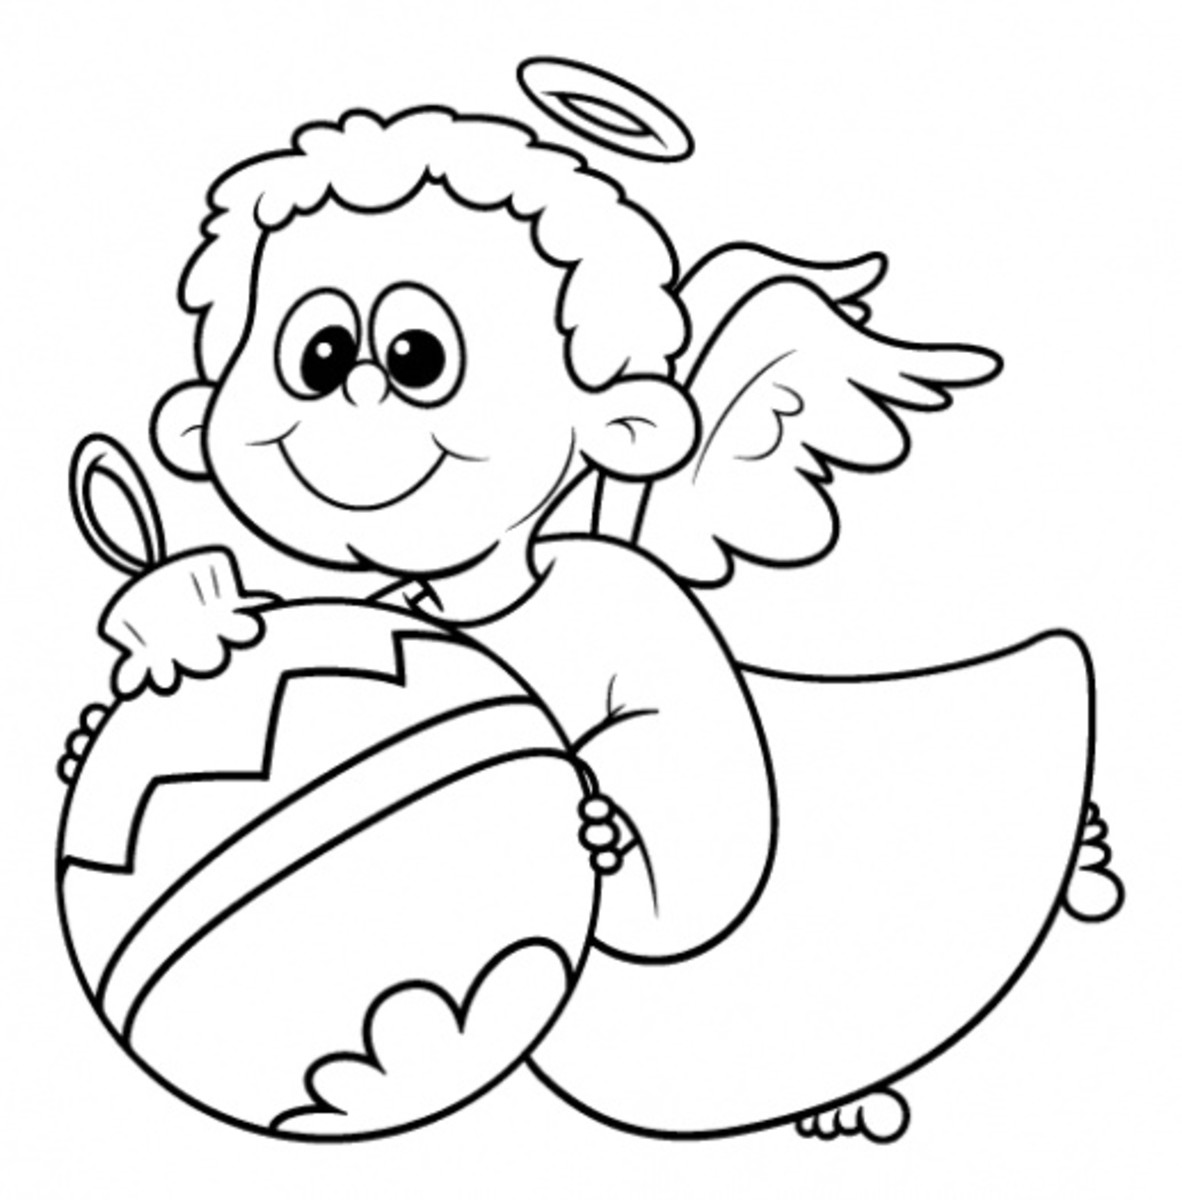 printable christmas coloring pages angels - photo#16